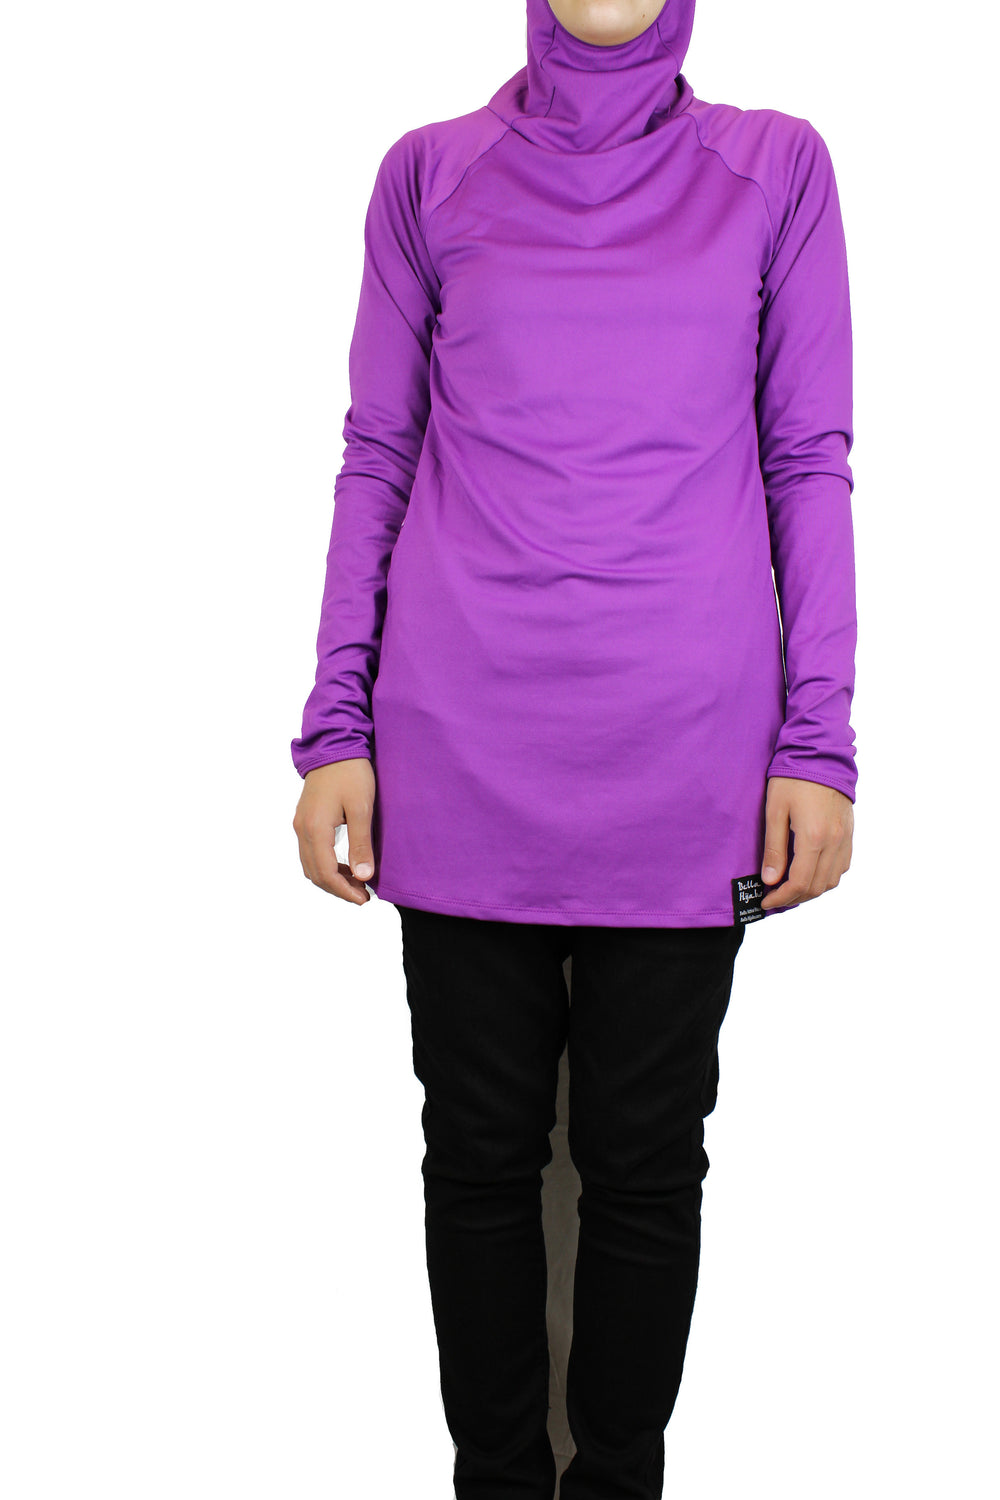 Attivo Hooded Workout Top - Purple